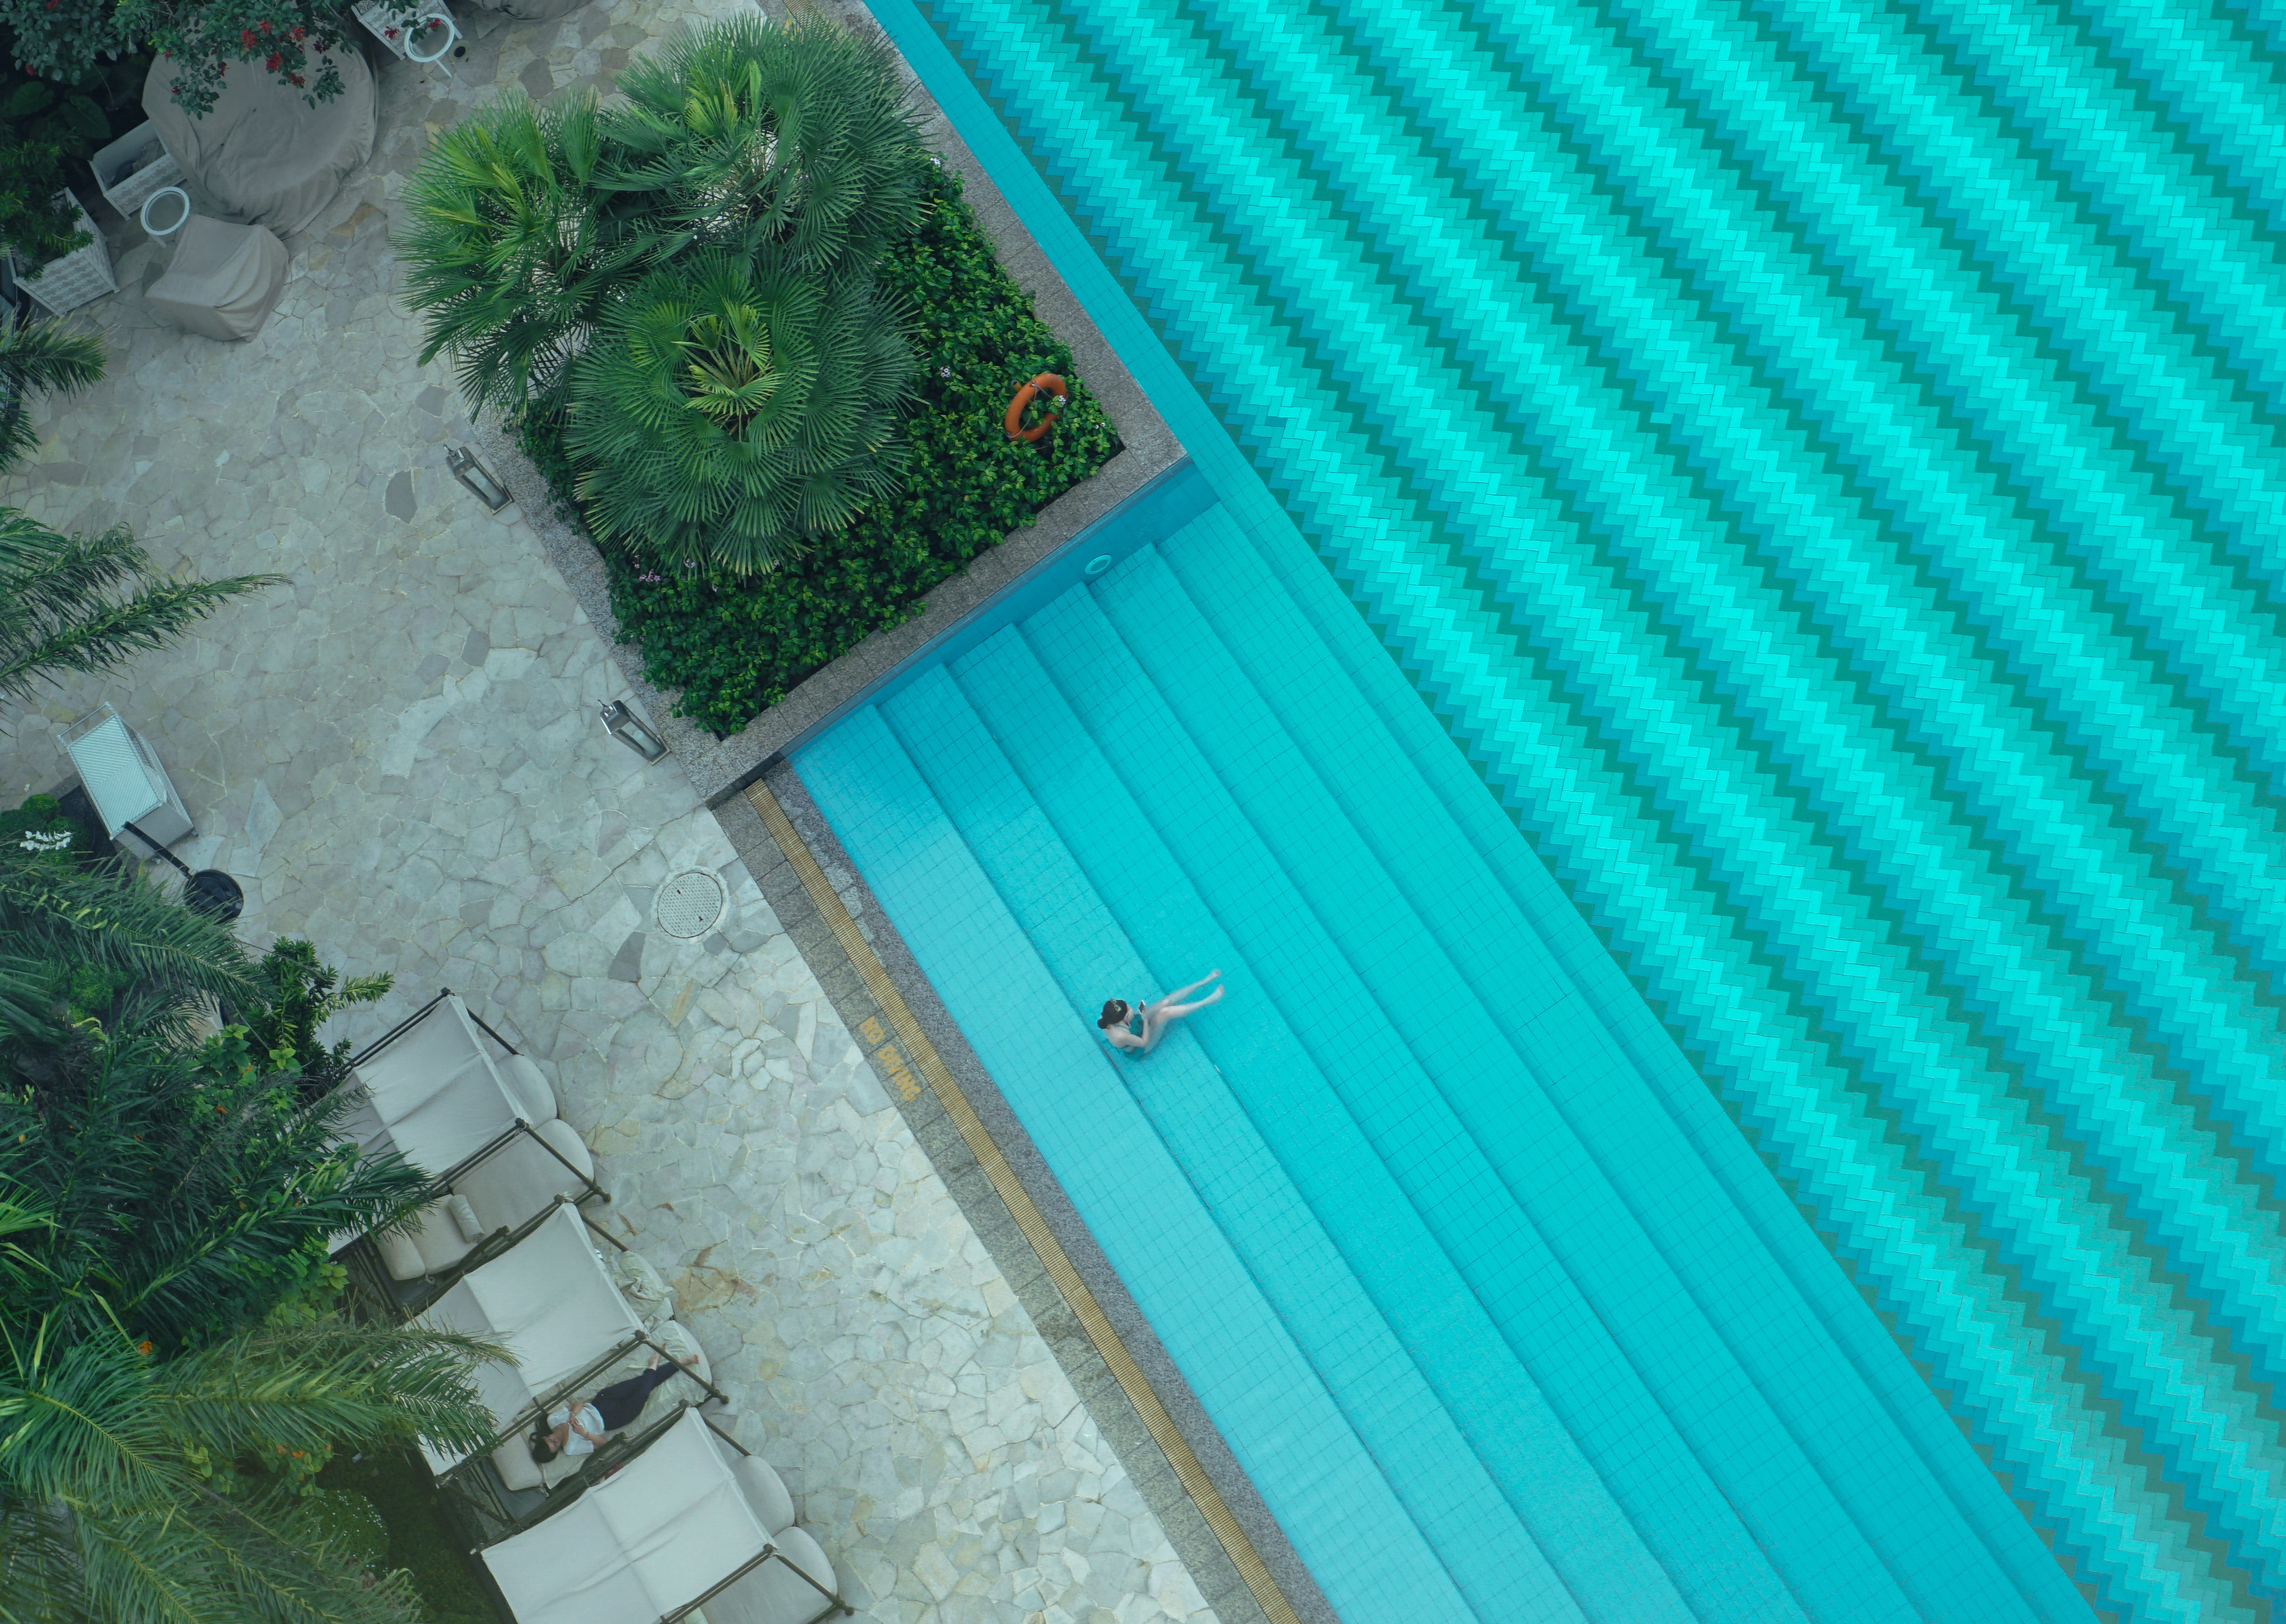 person sitting on teal surface